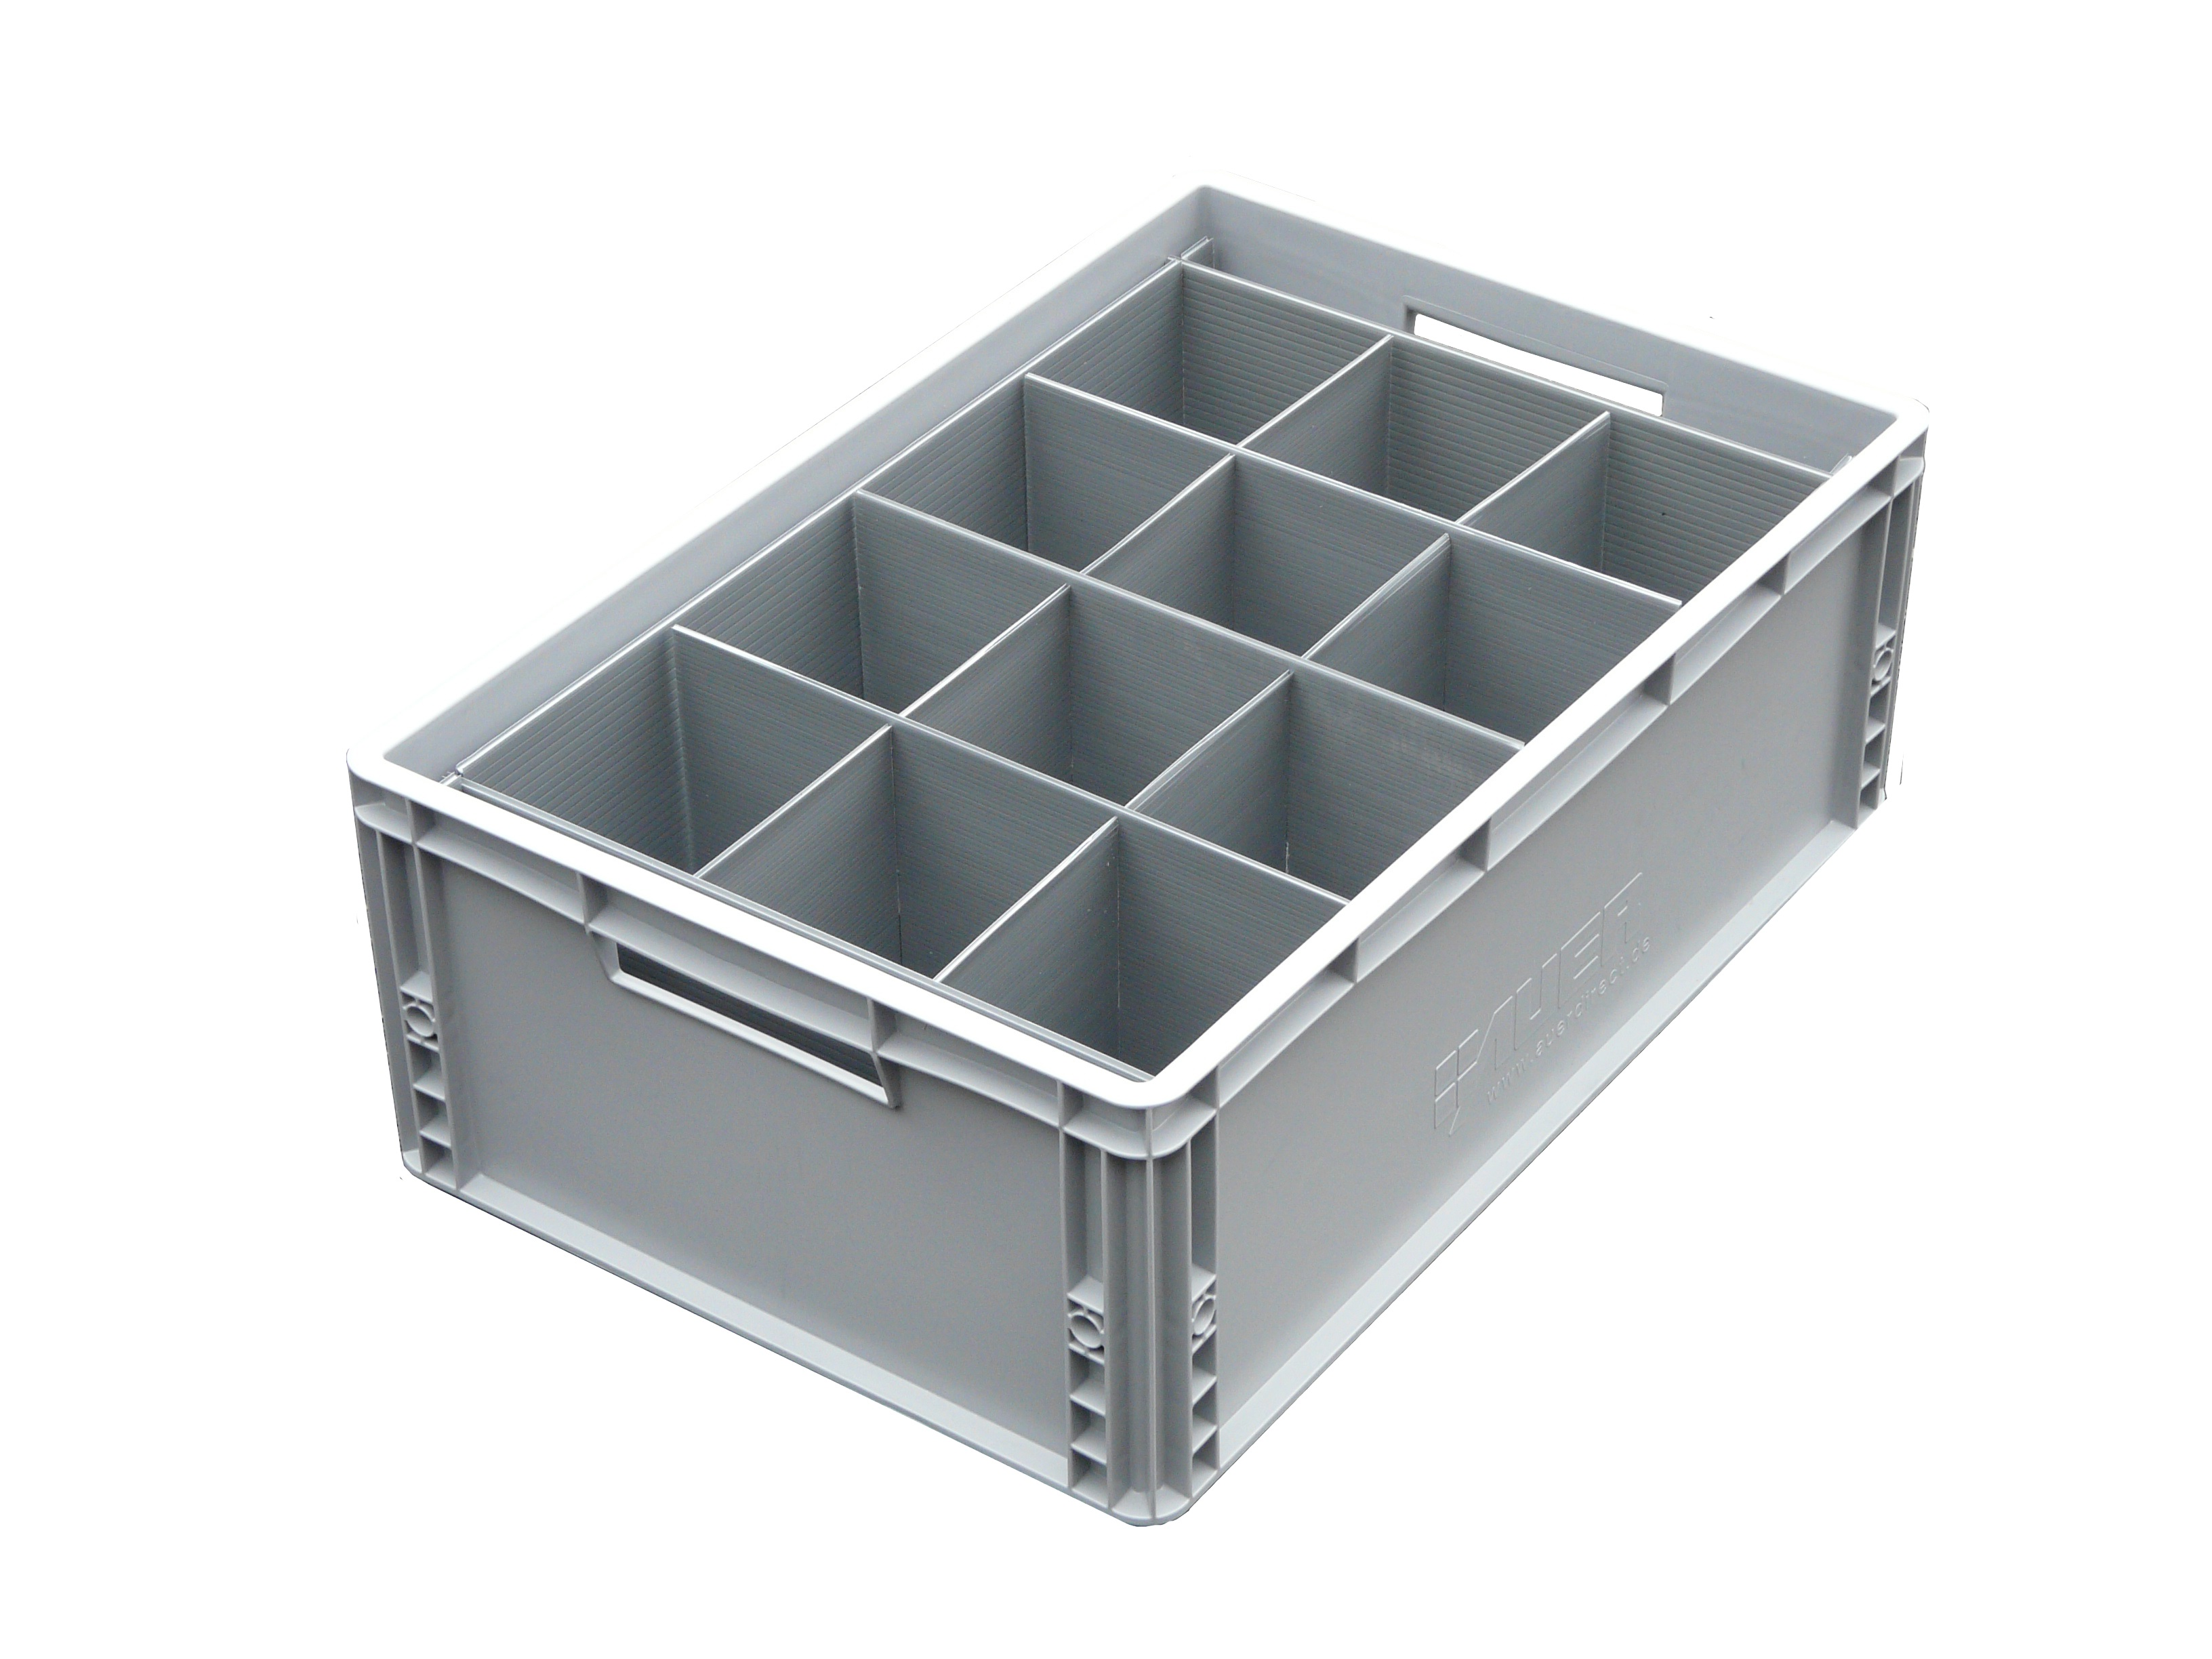 Glassware Storage Crate - Large - Height range 201mm to 250mm